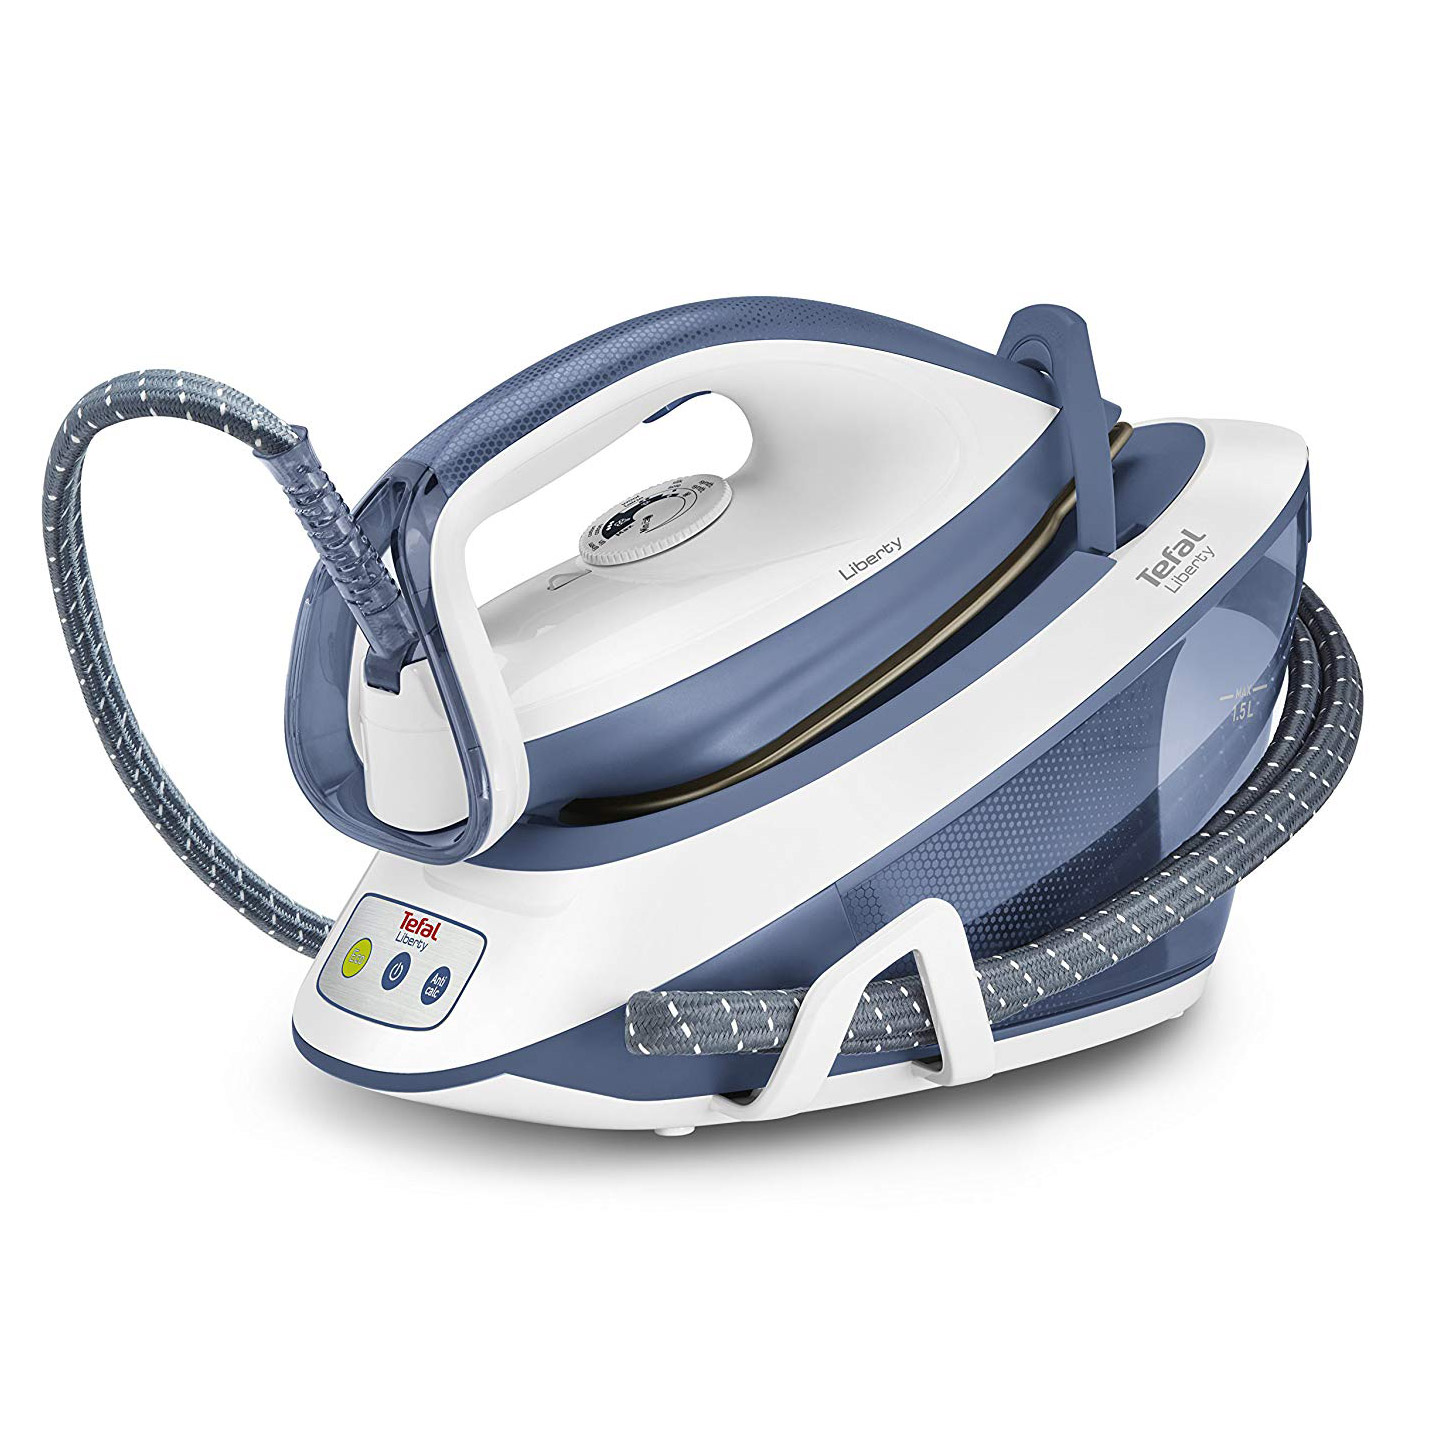 Tefal SV7020 Liberty Steam Generator Iron in Blue, 2200W 5 4 Bar